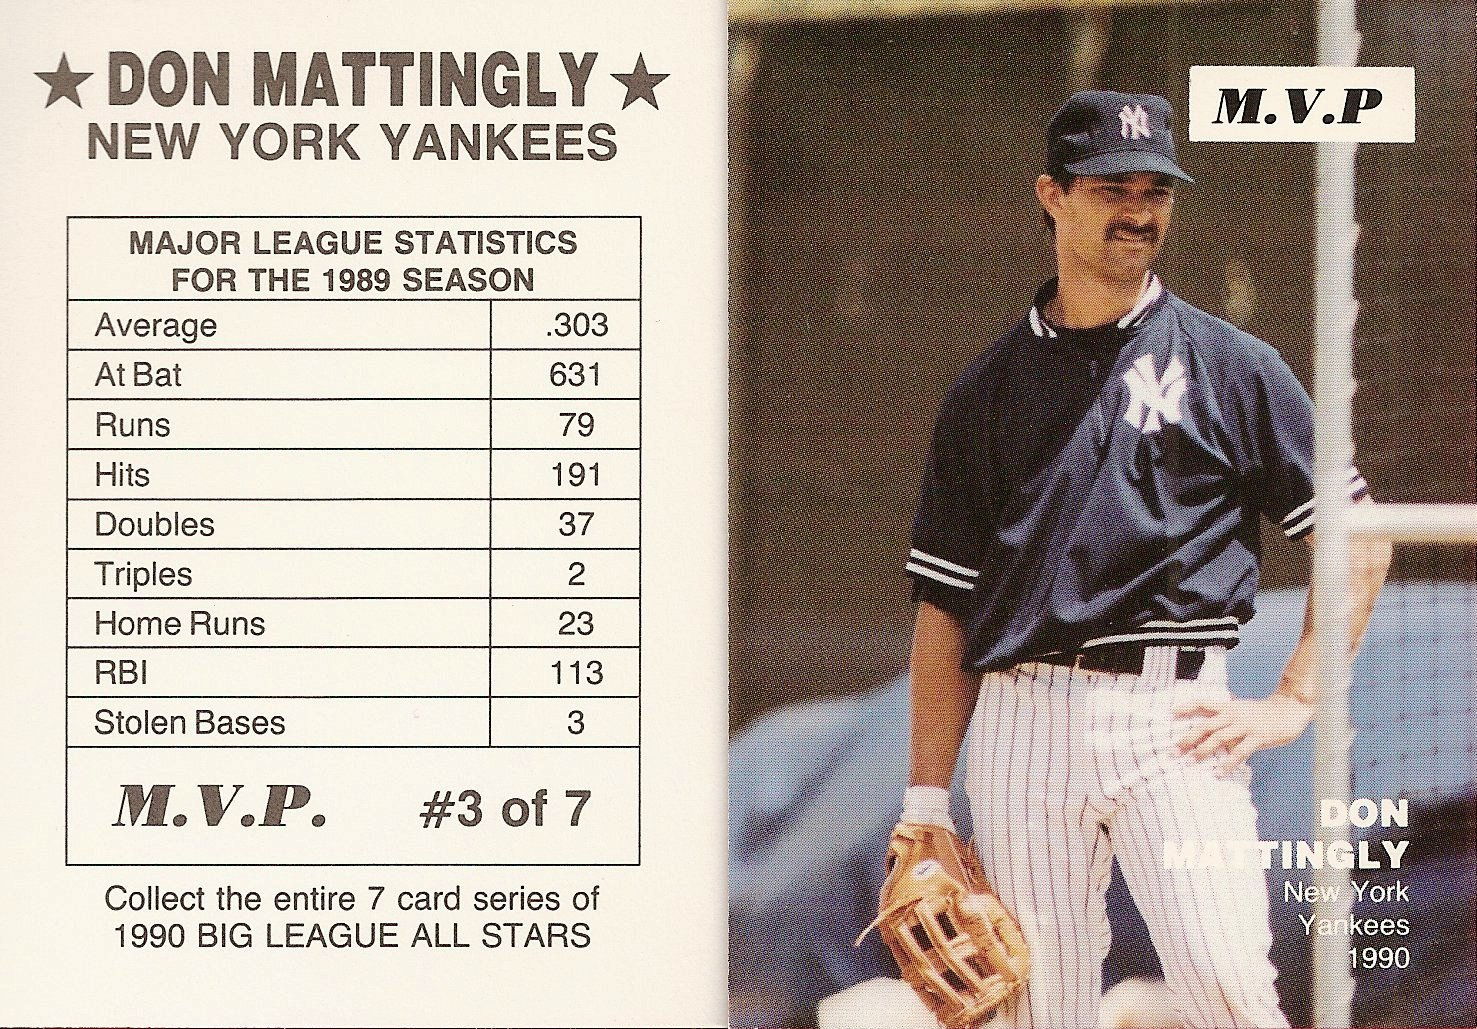 1990 Big League All-Stars MVP (white box MVP)